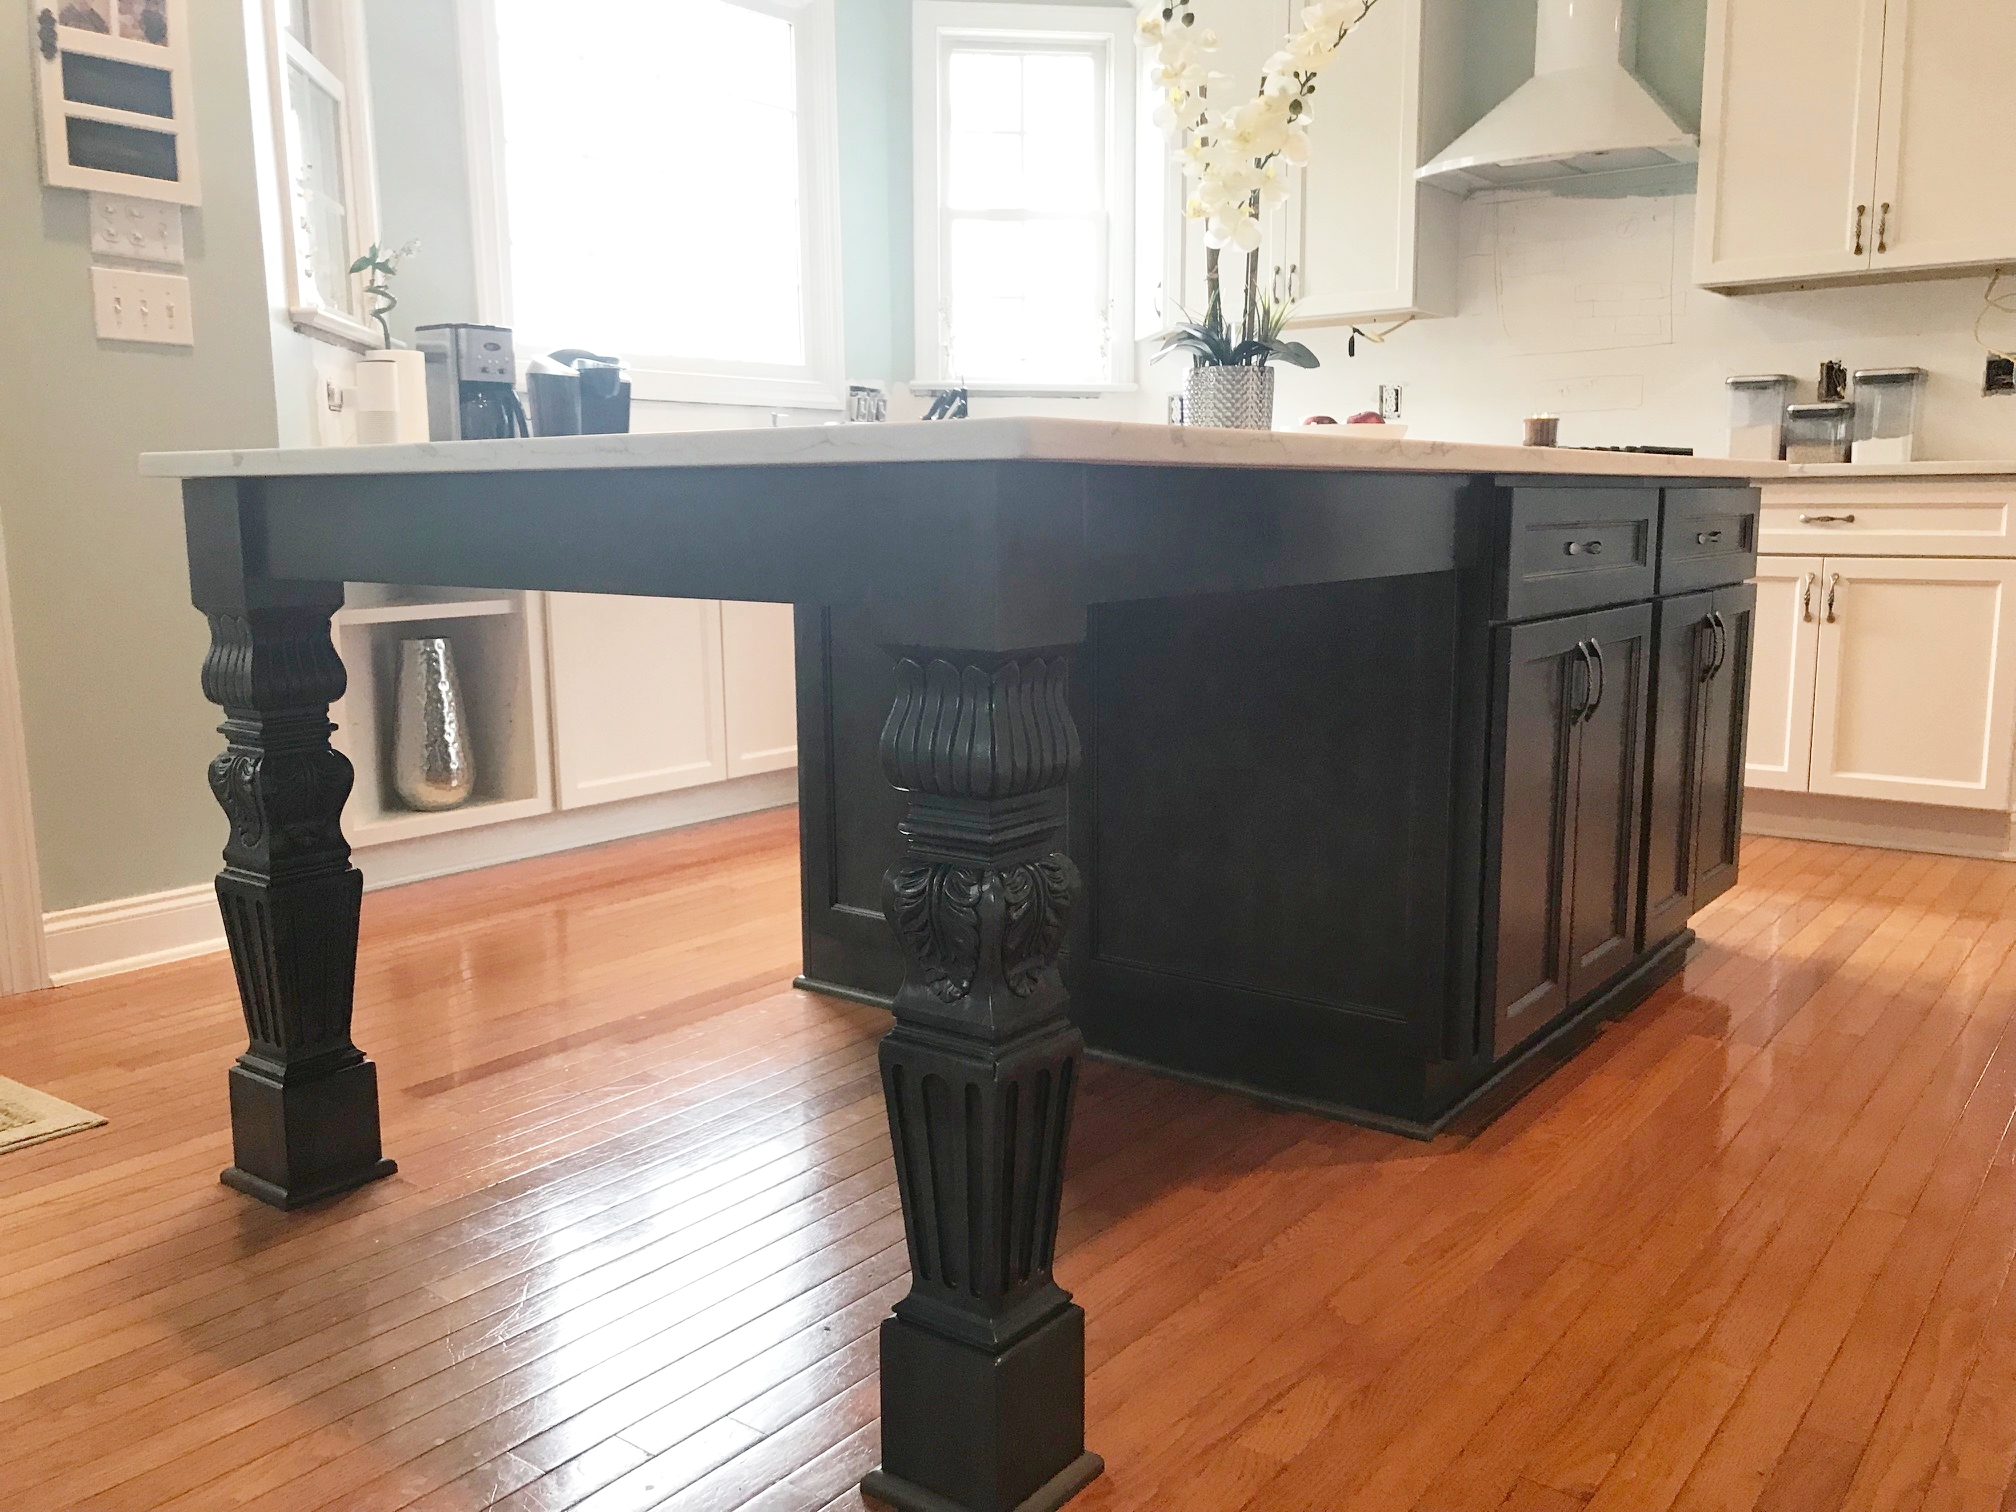 Custom Island with Shaker Doors & Drawers, Shaker Panel Detail, and Decorative Posts